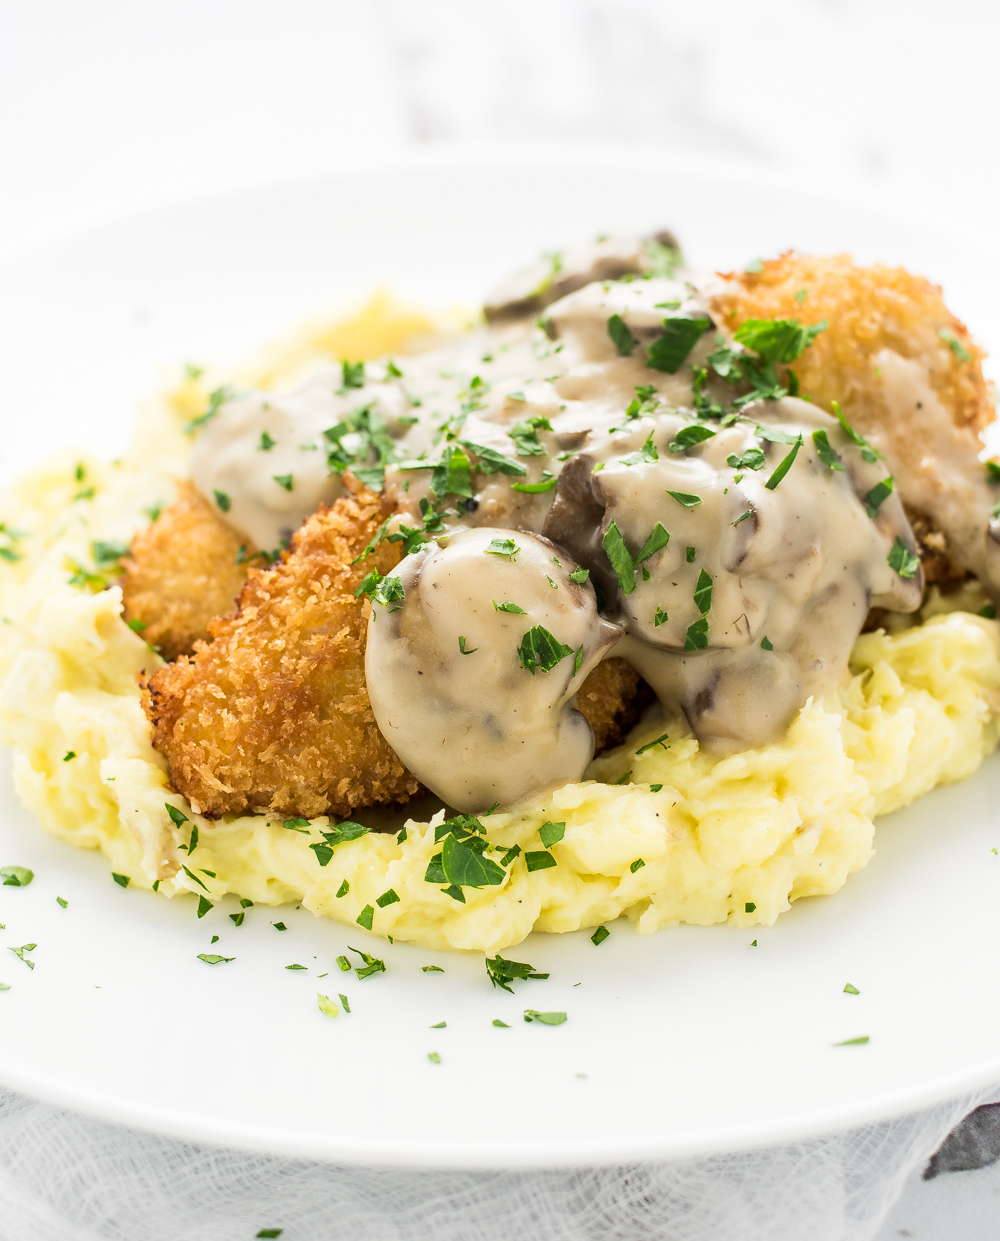 Pork Schnitzel with Mushroom Stout Gravy is a twist on a classic Austrian dish that is loaded with flavor and coated with crispiness!